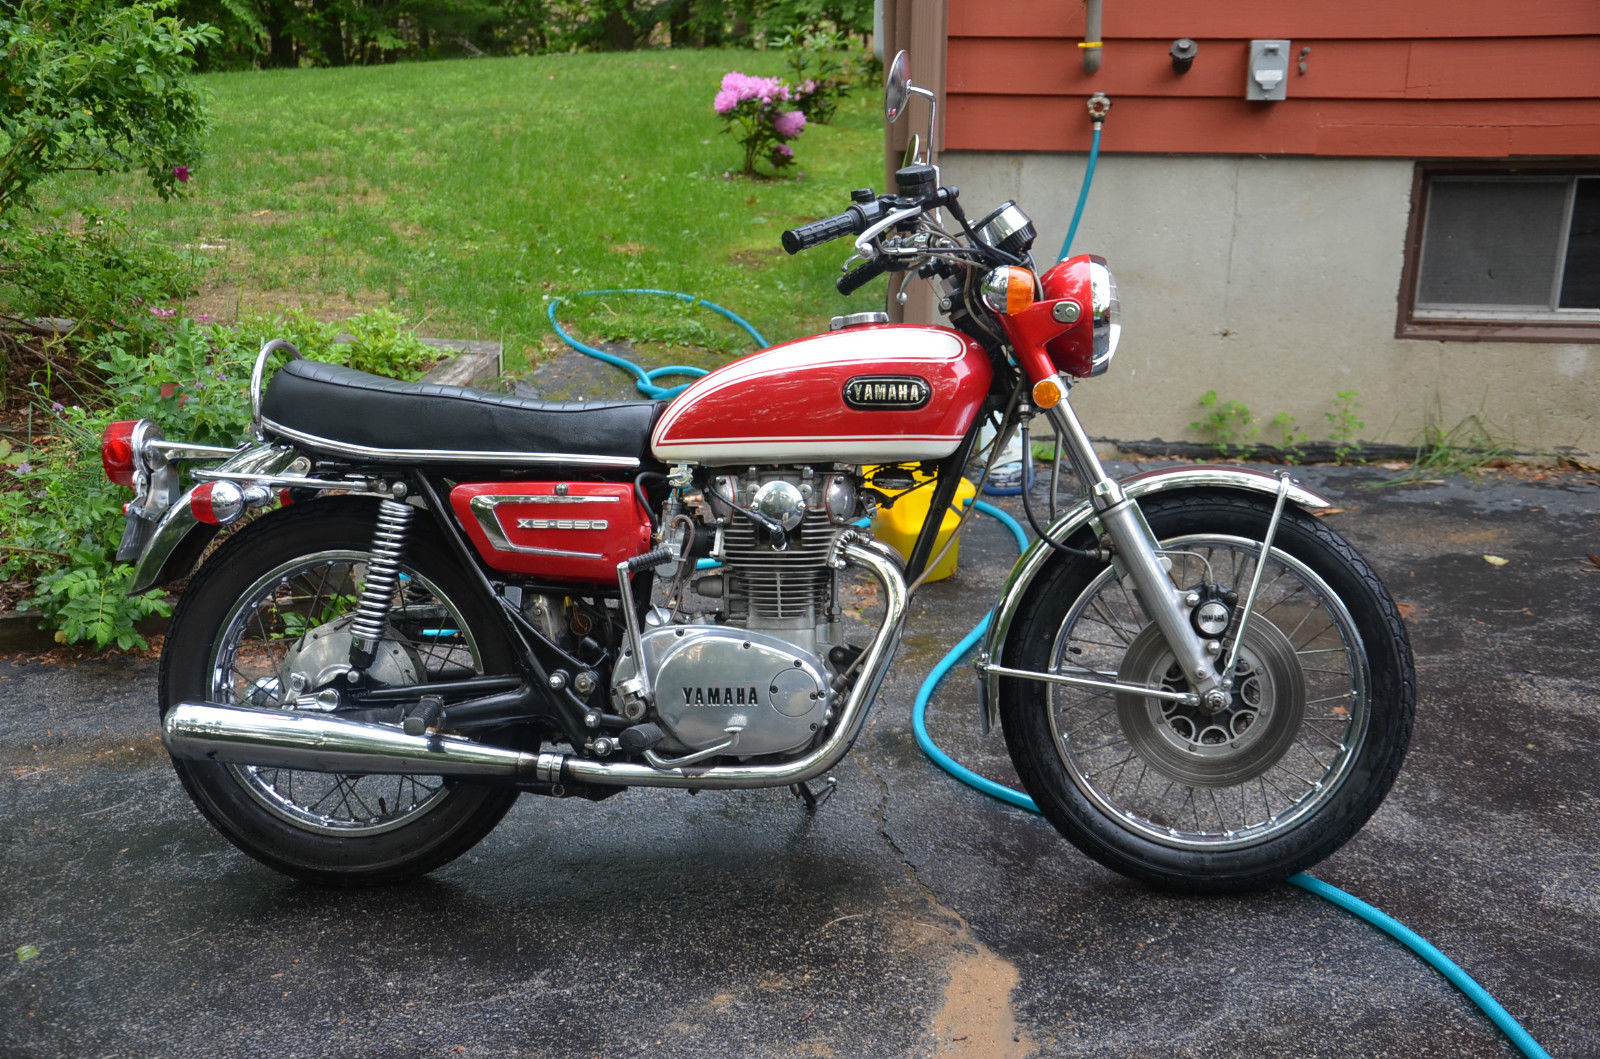 1972 Yamaha Xs650 XS 650 for sale